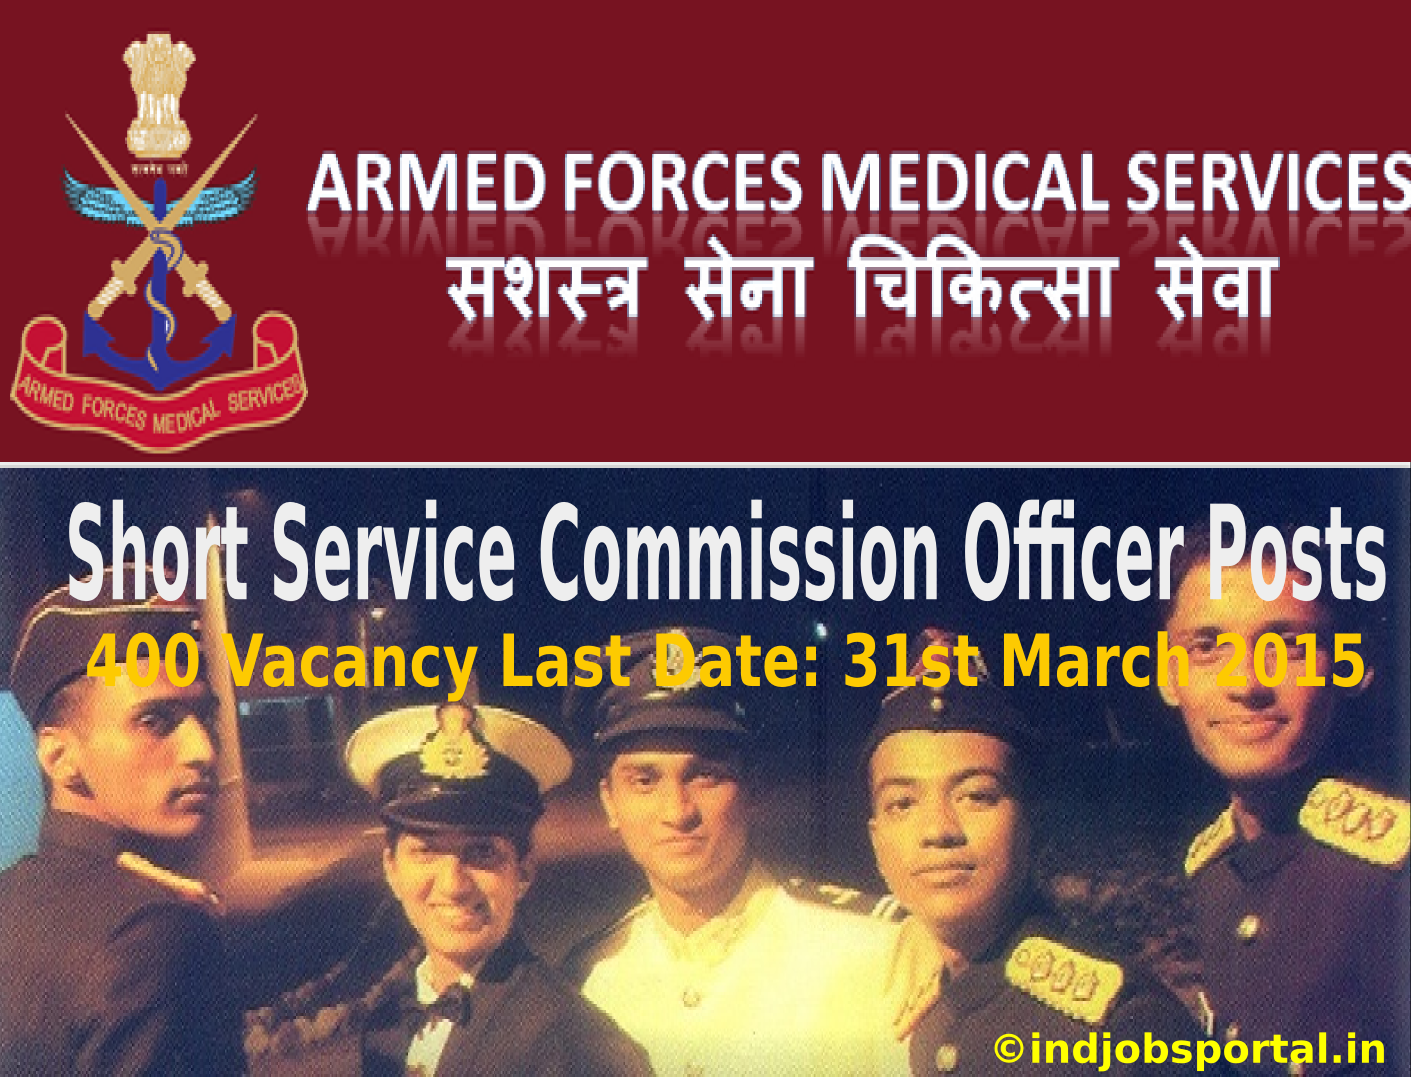 Army Medical Corps Recruitment 2015 For 400 Short Service Commission Officer Posts